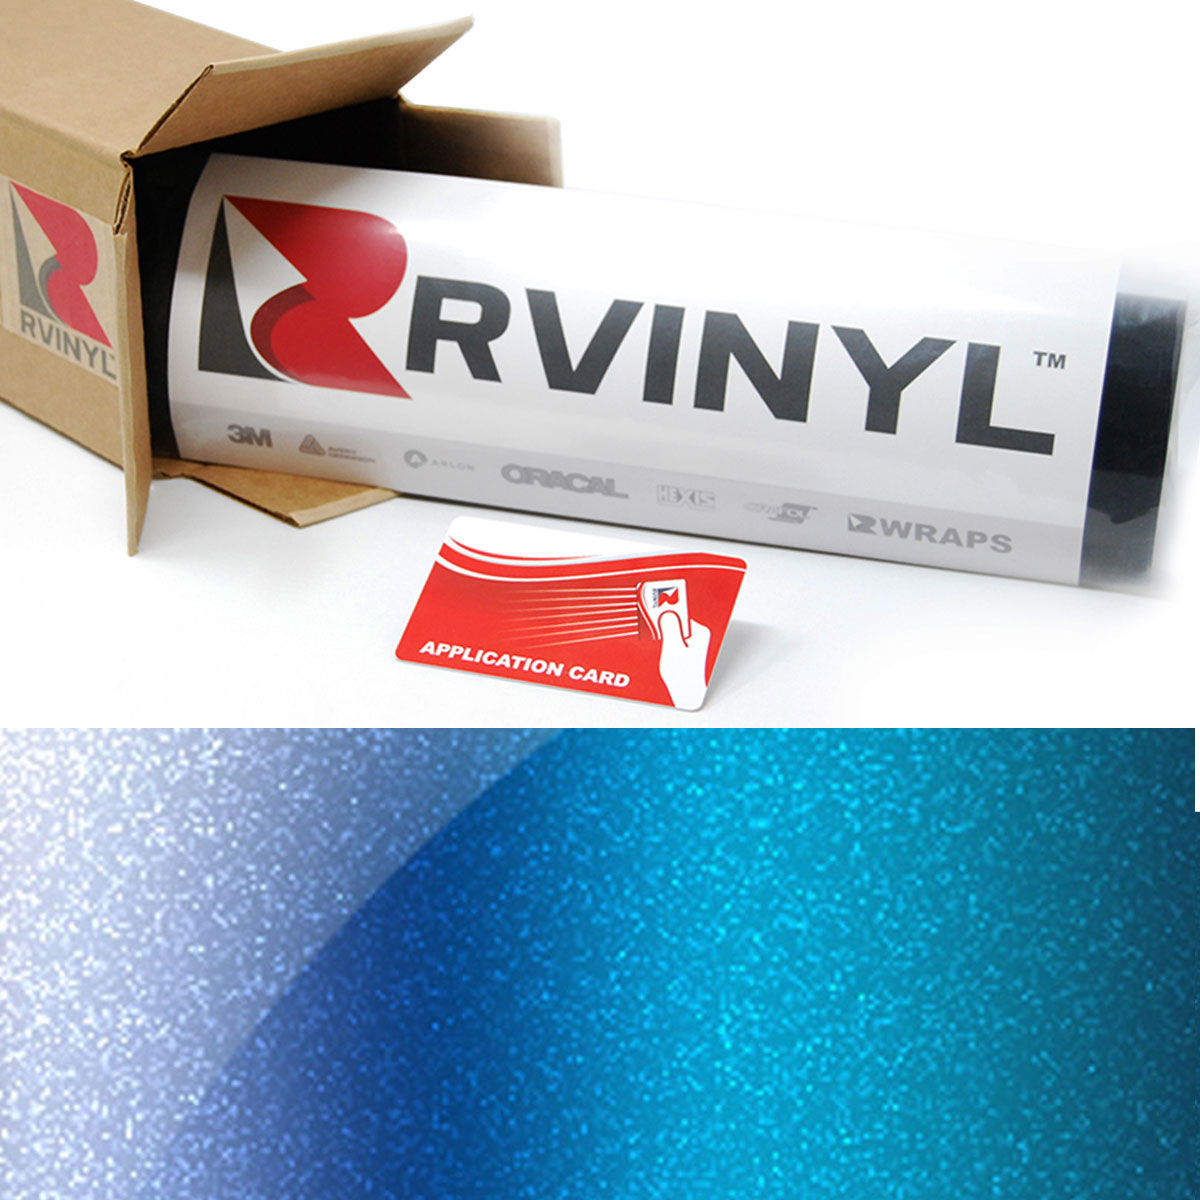 ORACAL 970RA Gloss Ultramarine Violet Premium Wrapping Cast Film